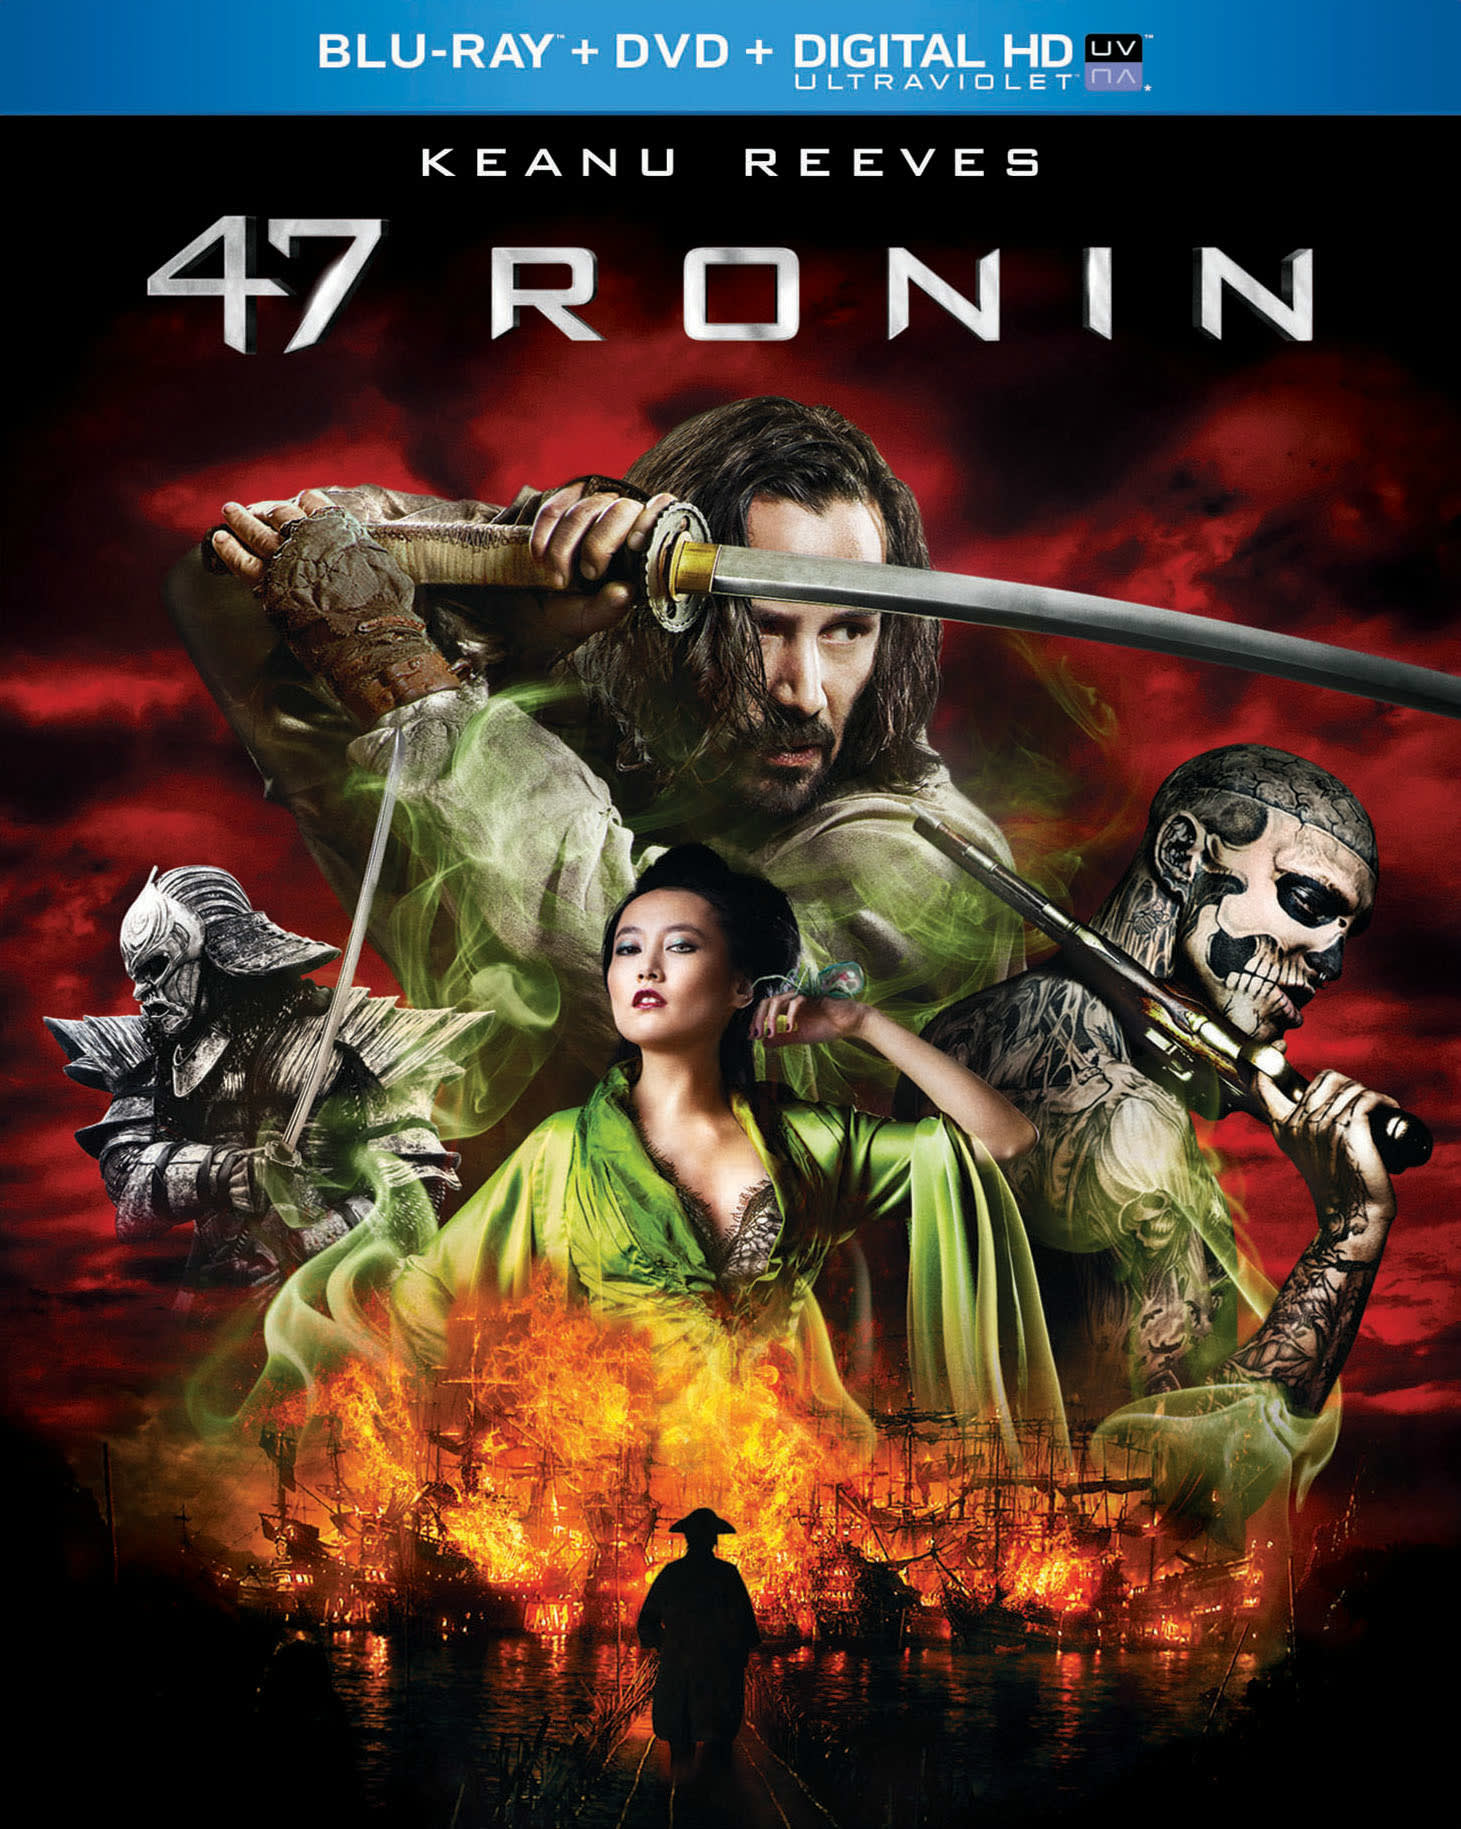 47 Ronin (DVD + Digital) [Blu-ray]